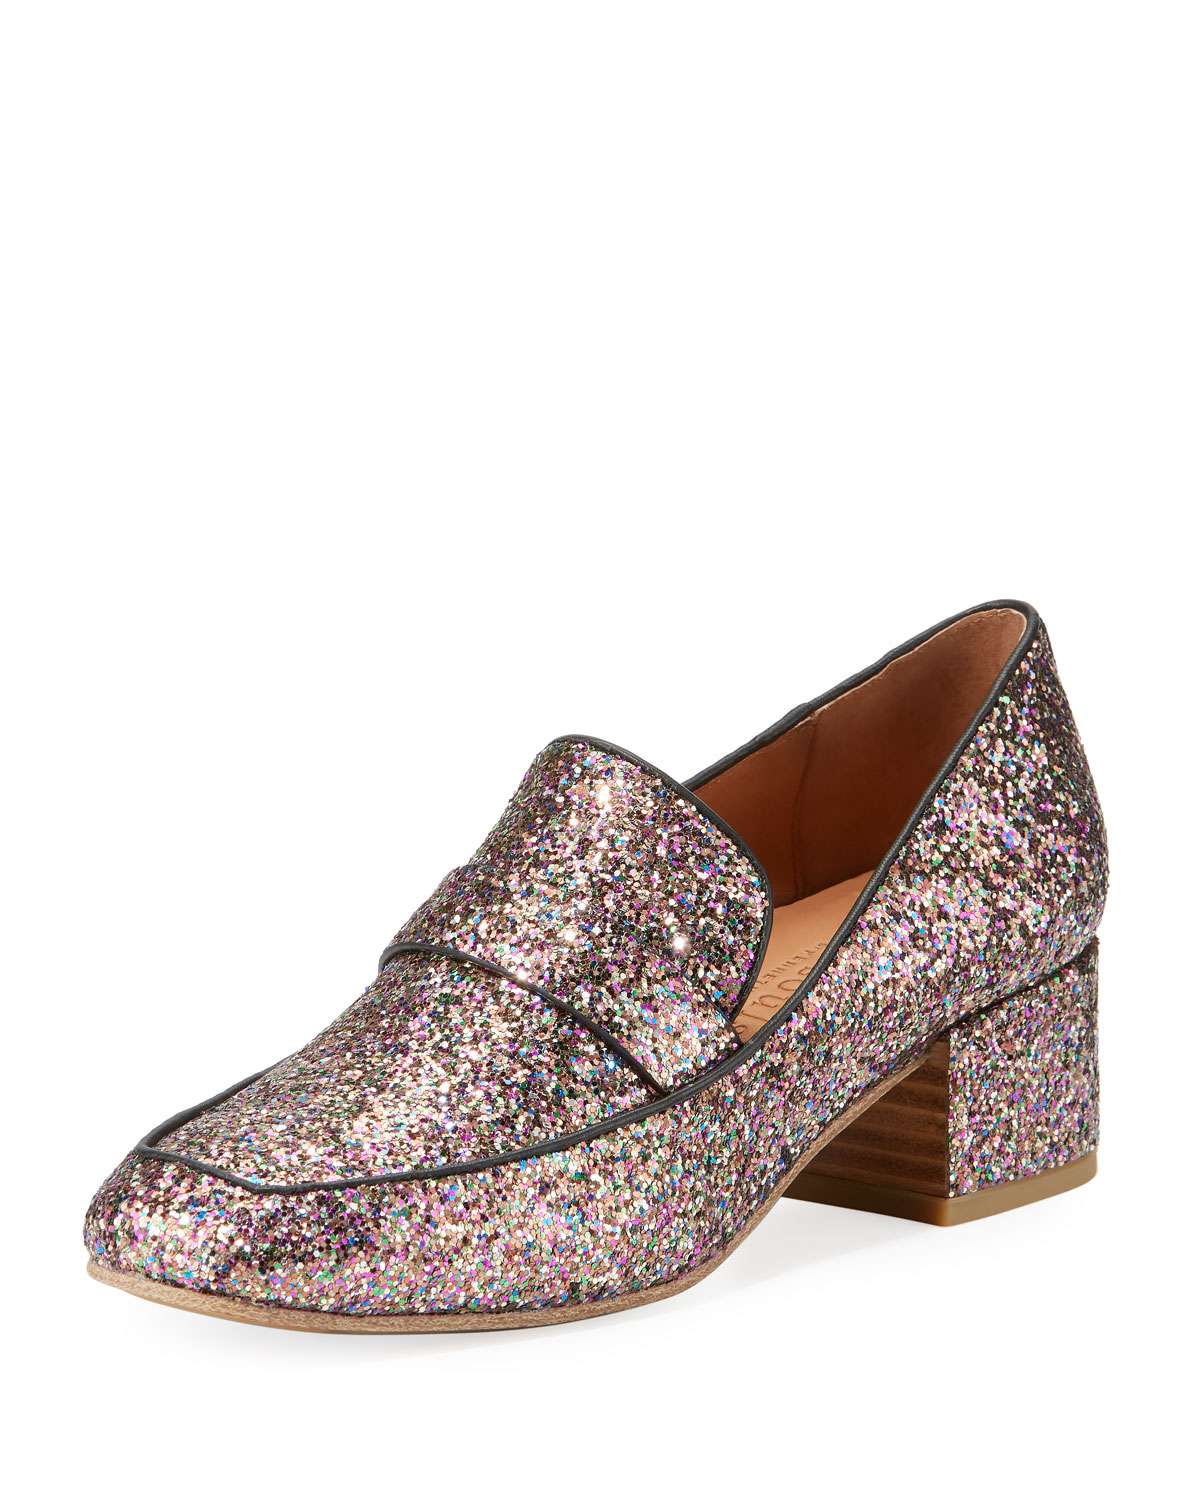 ce70e81fa2d Gentle Souls Eliott Low-Heel Glitter Leather Loafer